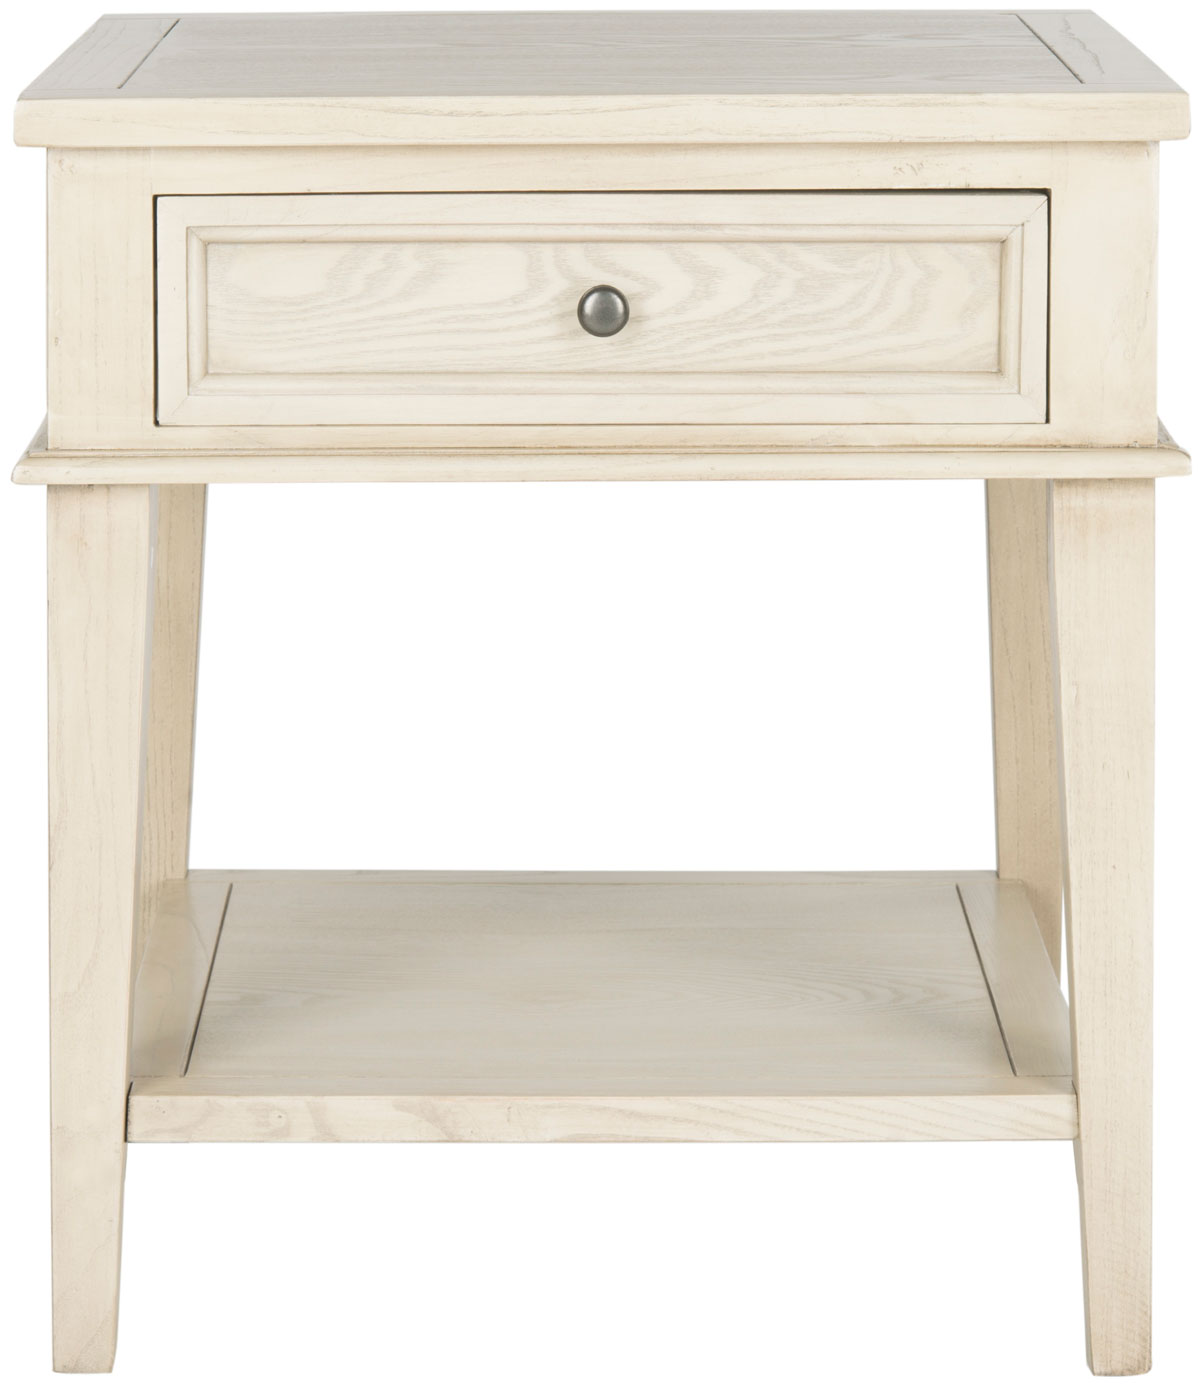 Manelin One Drawer Wood End Table Amh6640b Accent Tables Color White Wash